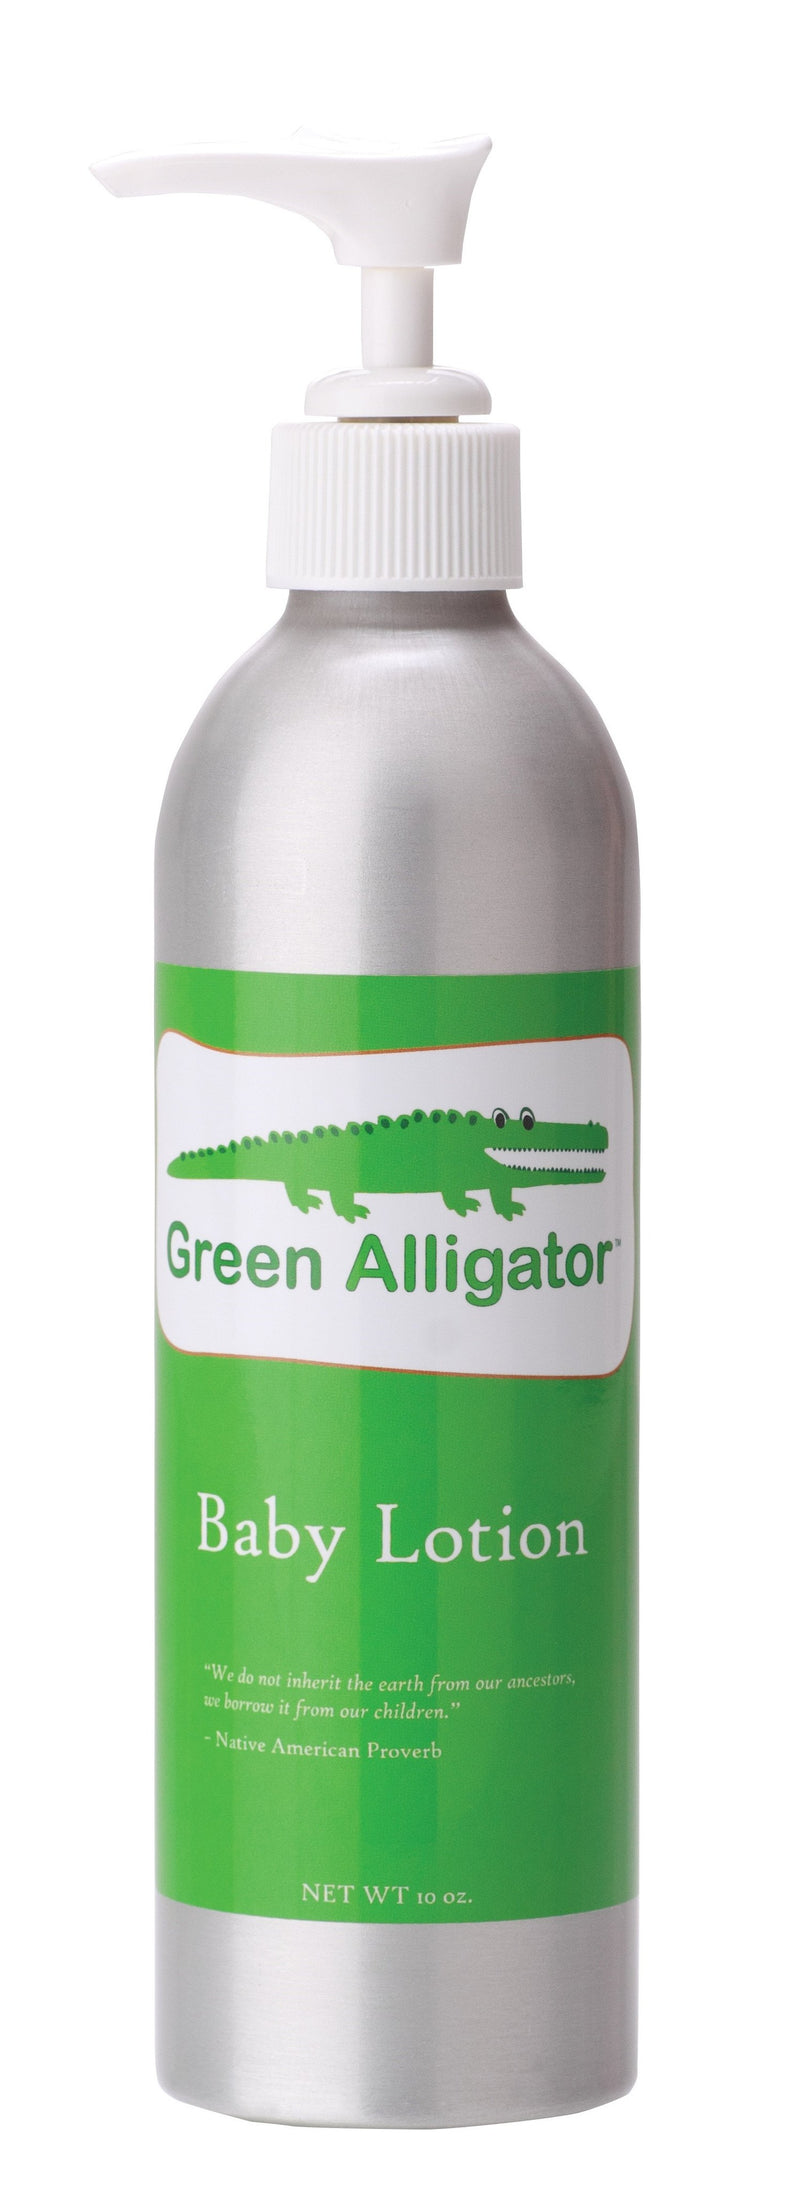 Green Alligator Baby Lotion- Celadon Road- www.celadonroad.com